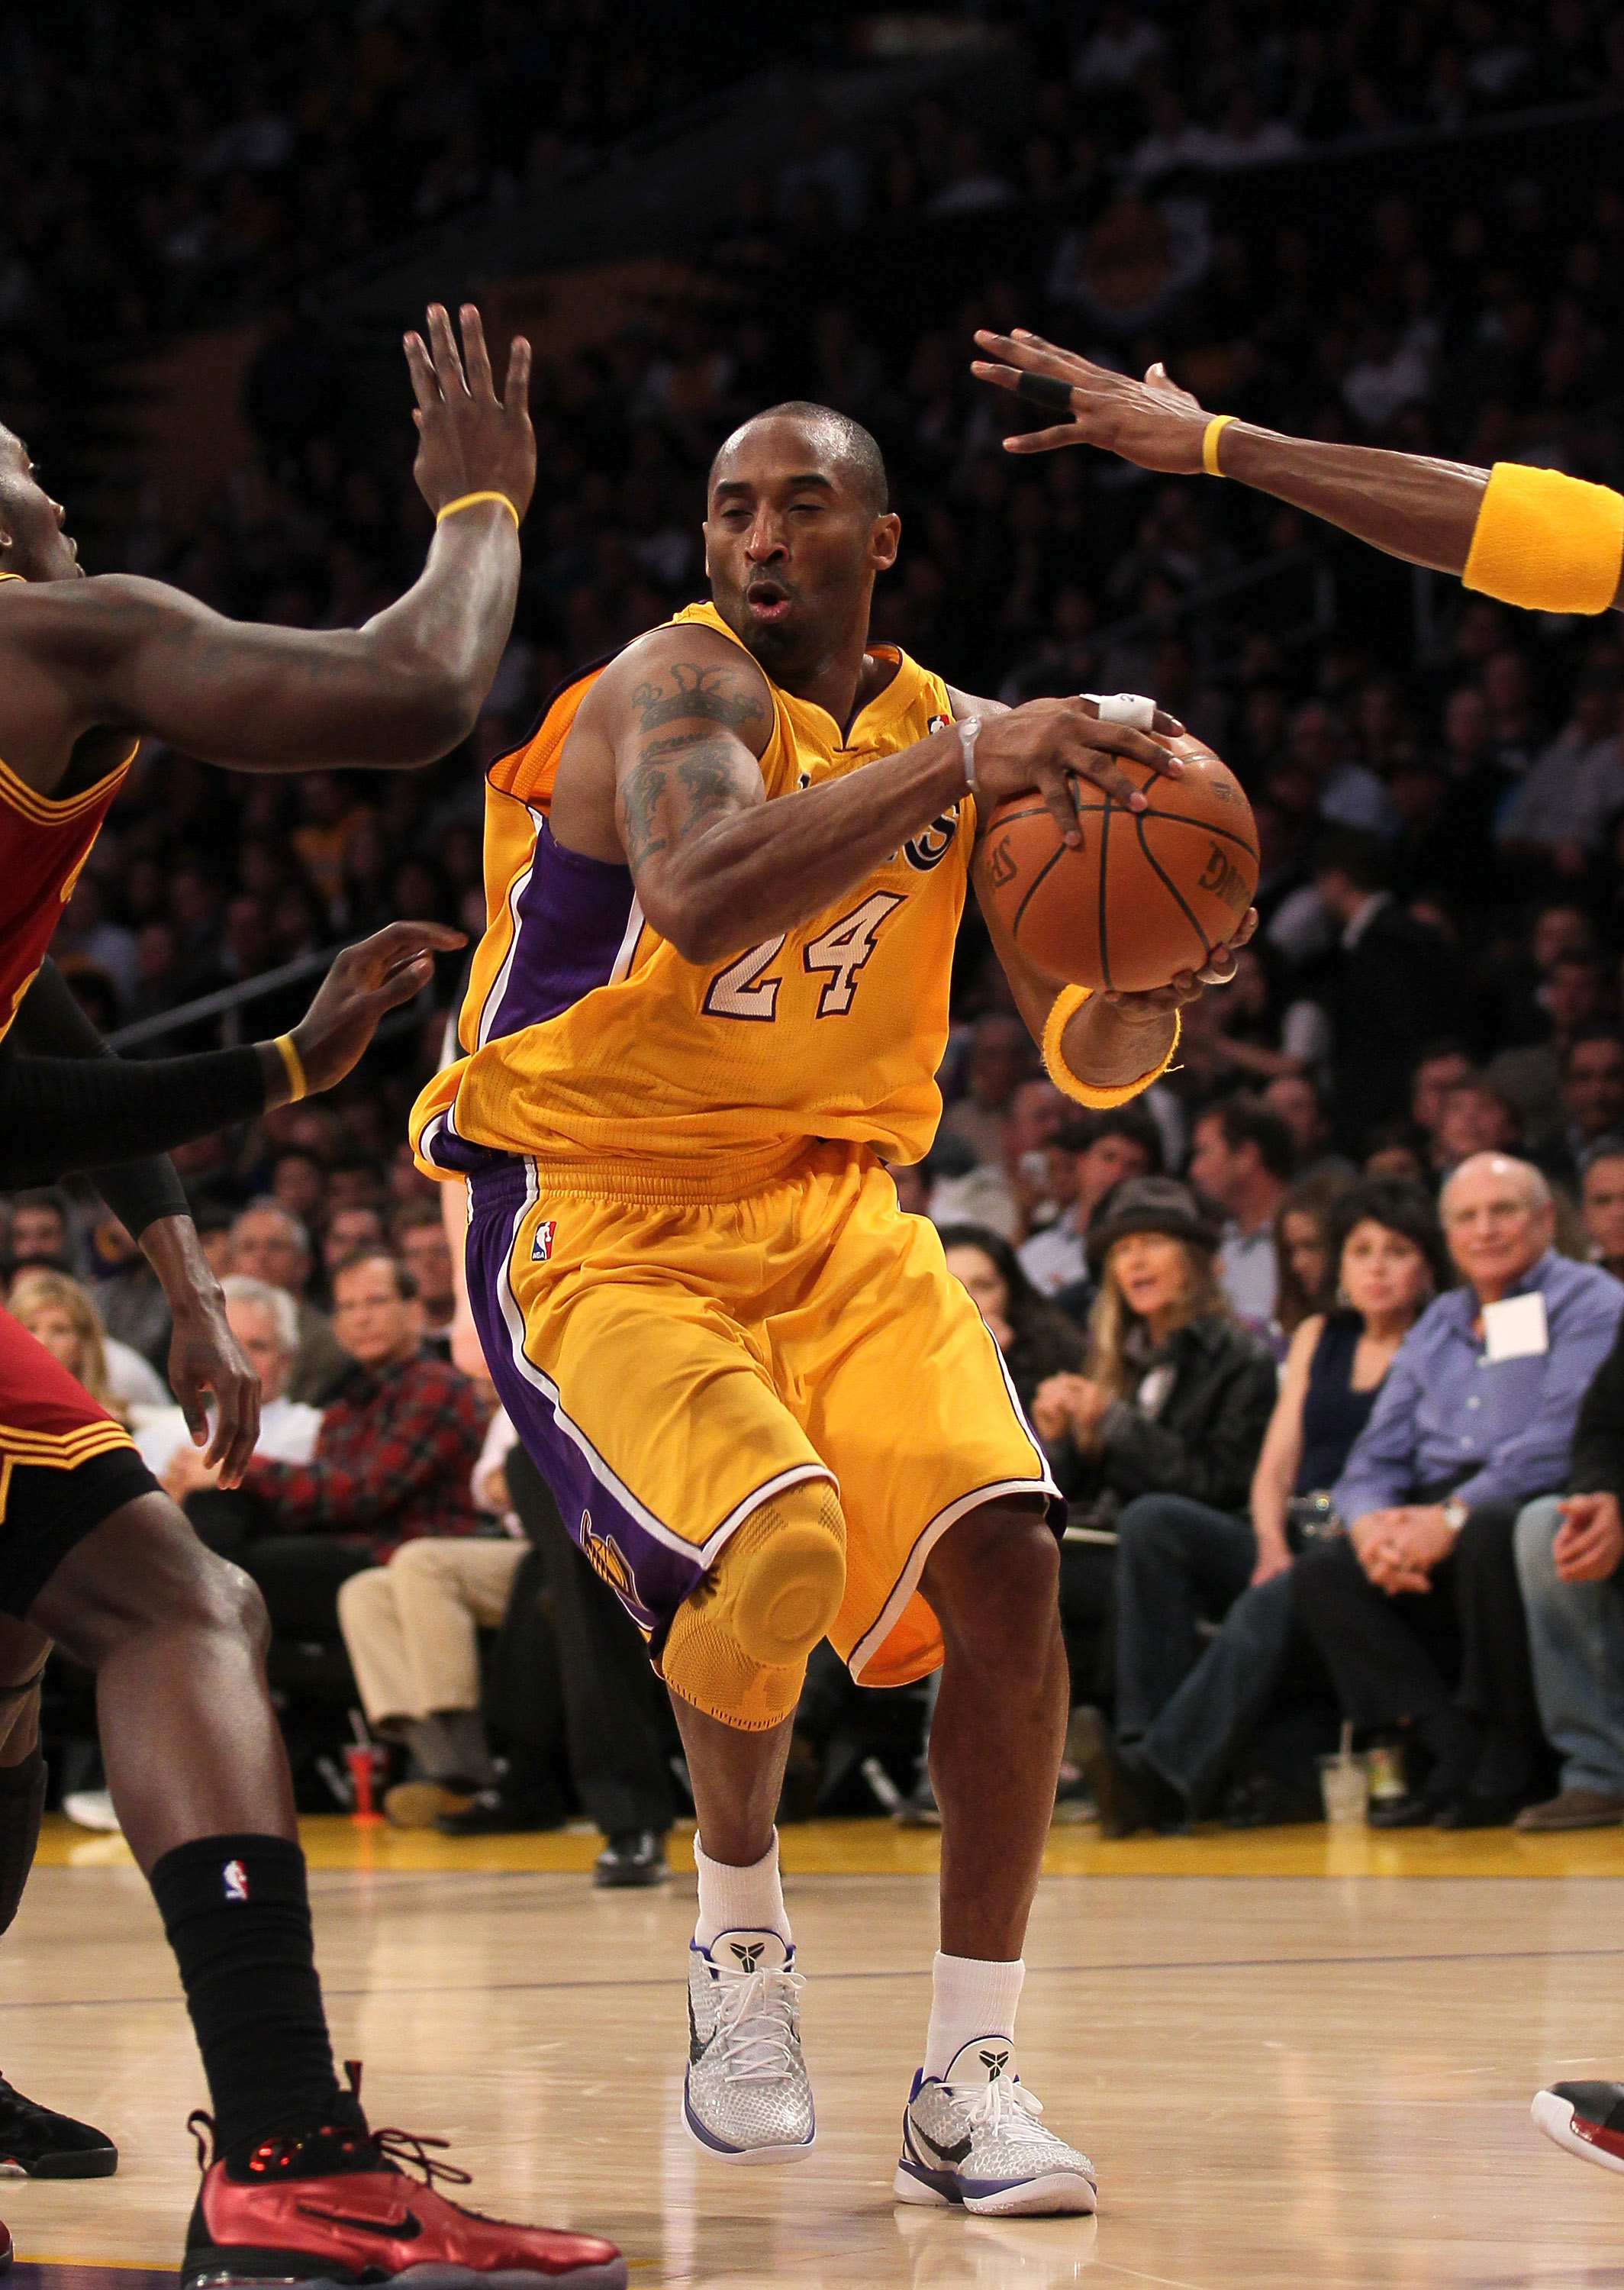 LOS ANGELES, CA - JANUARY 11:  Kobe Bryant #24 of the Los Angeles Lakers drives against the Cleveland Cavaliers at Staples Center on January 11, 2011 in Los Angeles, California.  The Lakers won 112-57.  NOTE TO USER: User expressly acknowledges and agrees